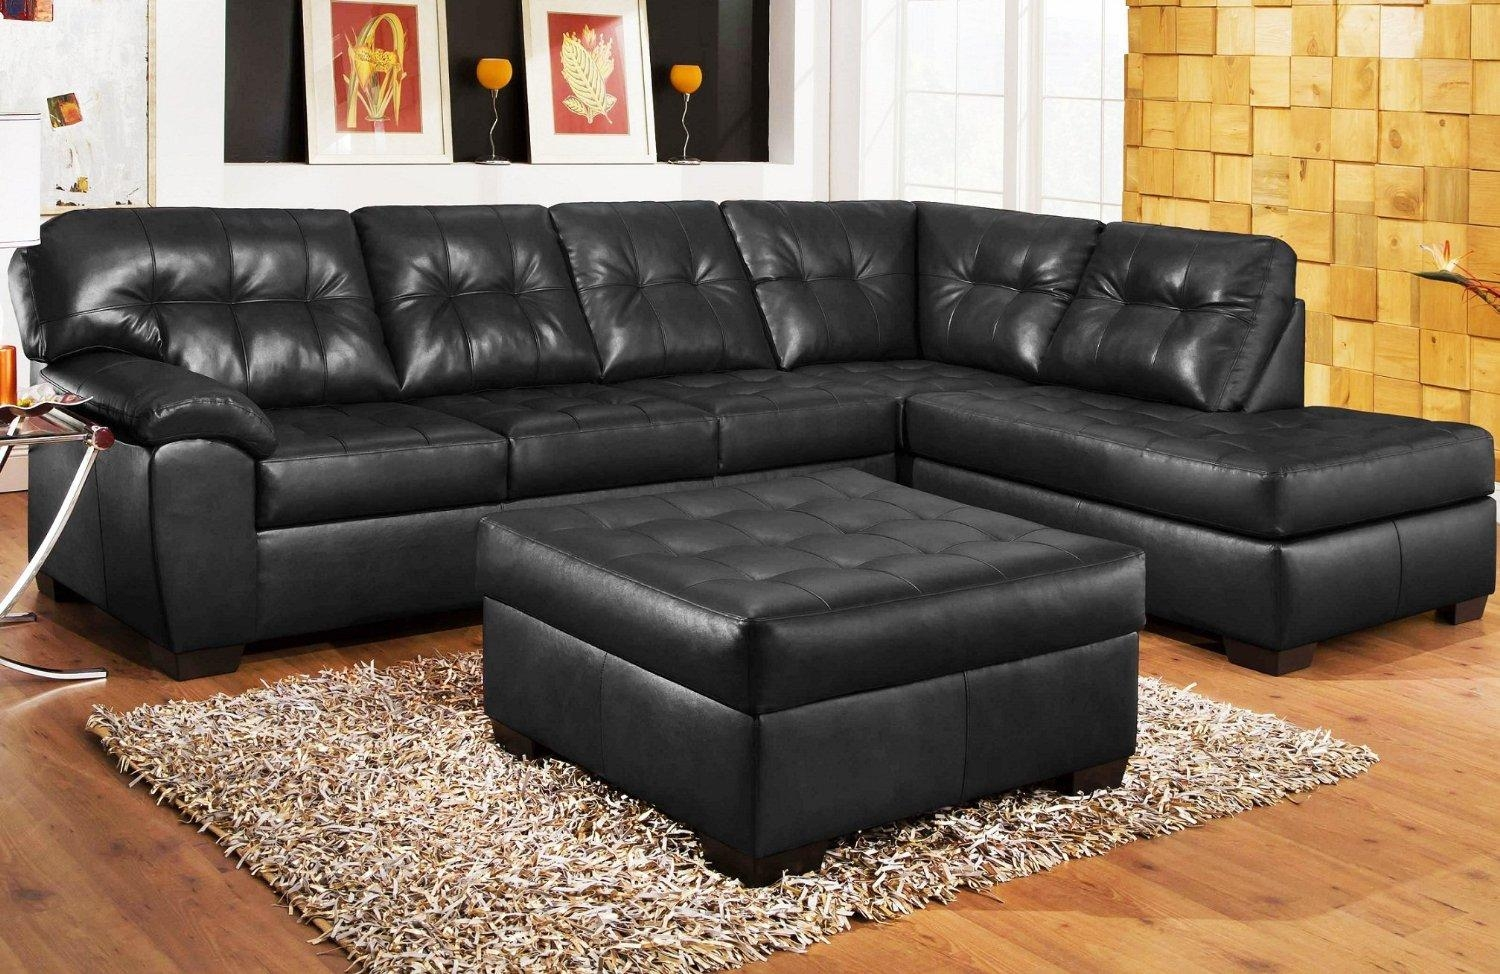 Interior: Inexpensive Sectionals And Cheap Leather Sectionals In Inexpensive Sectionals (Image 9 of 20)